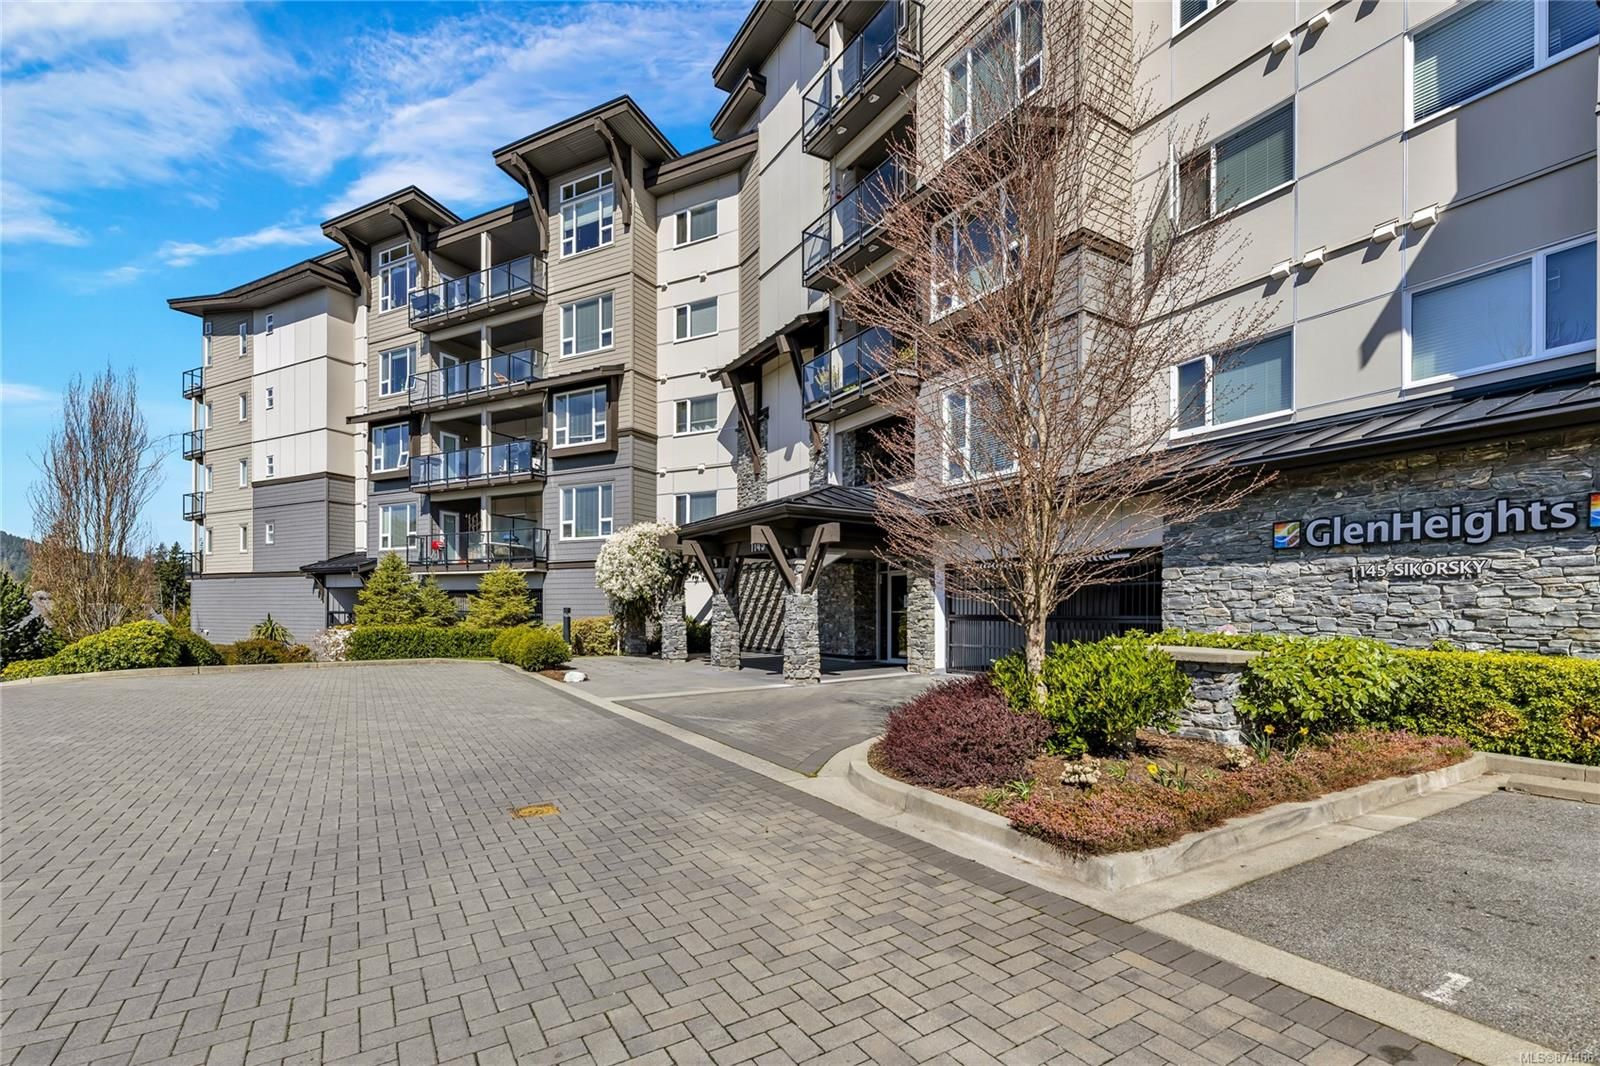 Main Photo: 315 1145 Sikorsky Rd in : La Westhills Condo for sale (Langford)  : MLS®# 874466